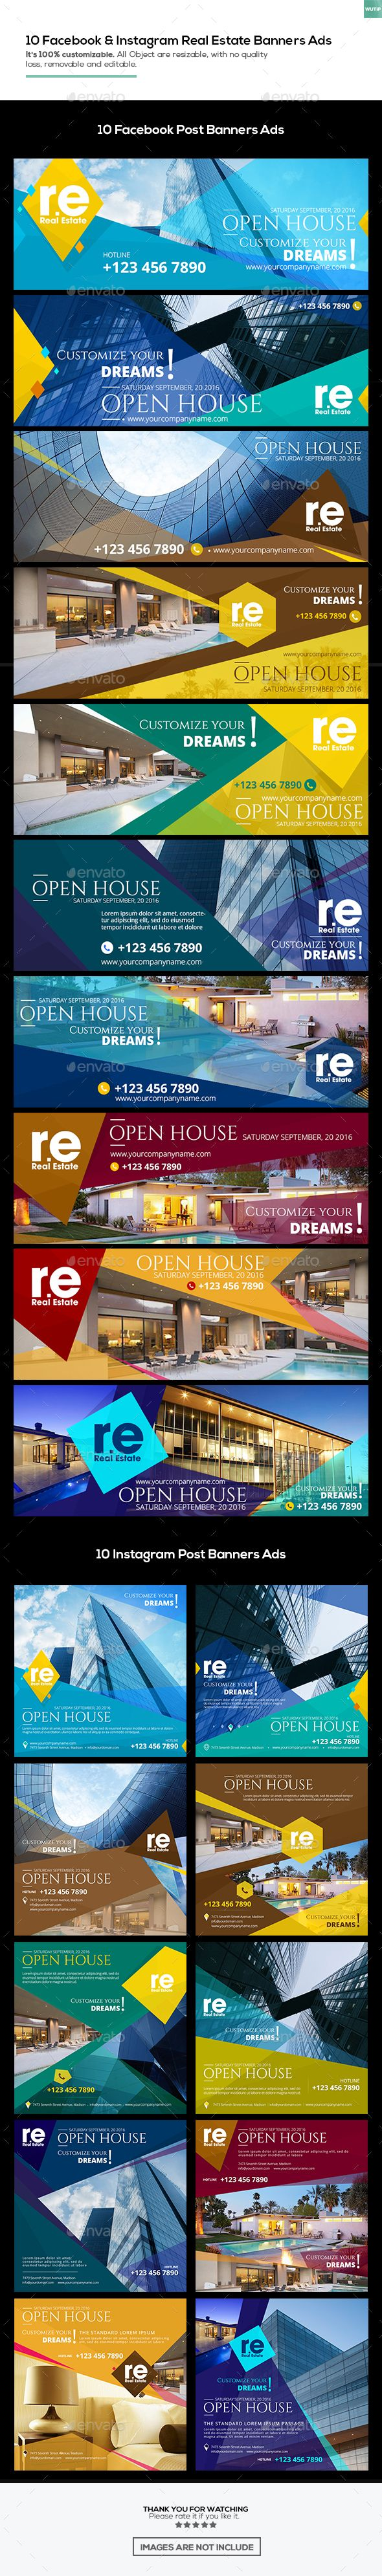 10 Facebook Cover & 10 Instagram Real Estate Post Banners Ads — PSD Template #rent #property • Download ➝ https://graphicriver.net/item/10-facebook-cover-10-instagram-real-estate-post-banners-ads/18124712?ref=pxcr